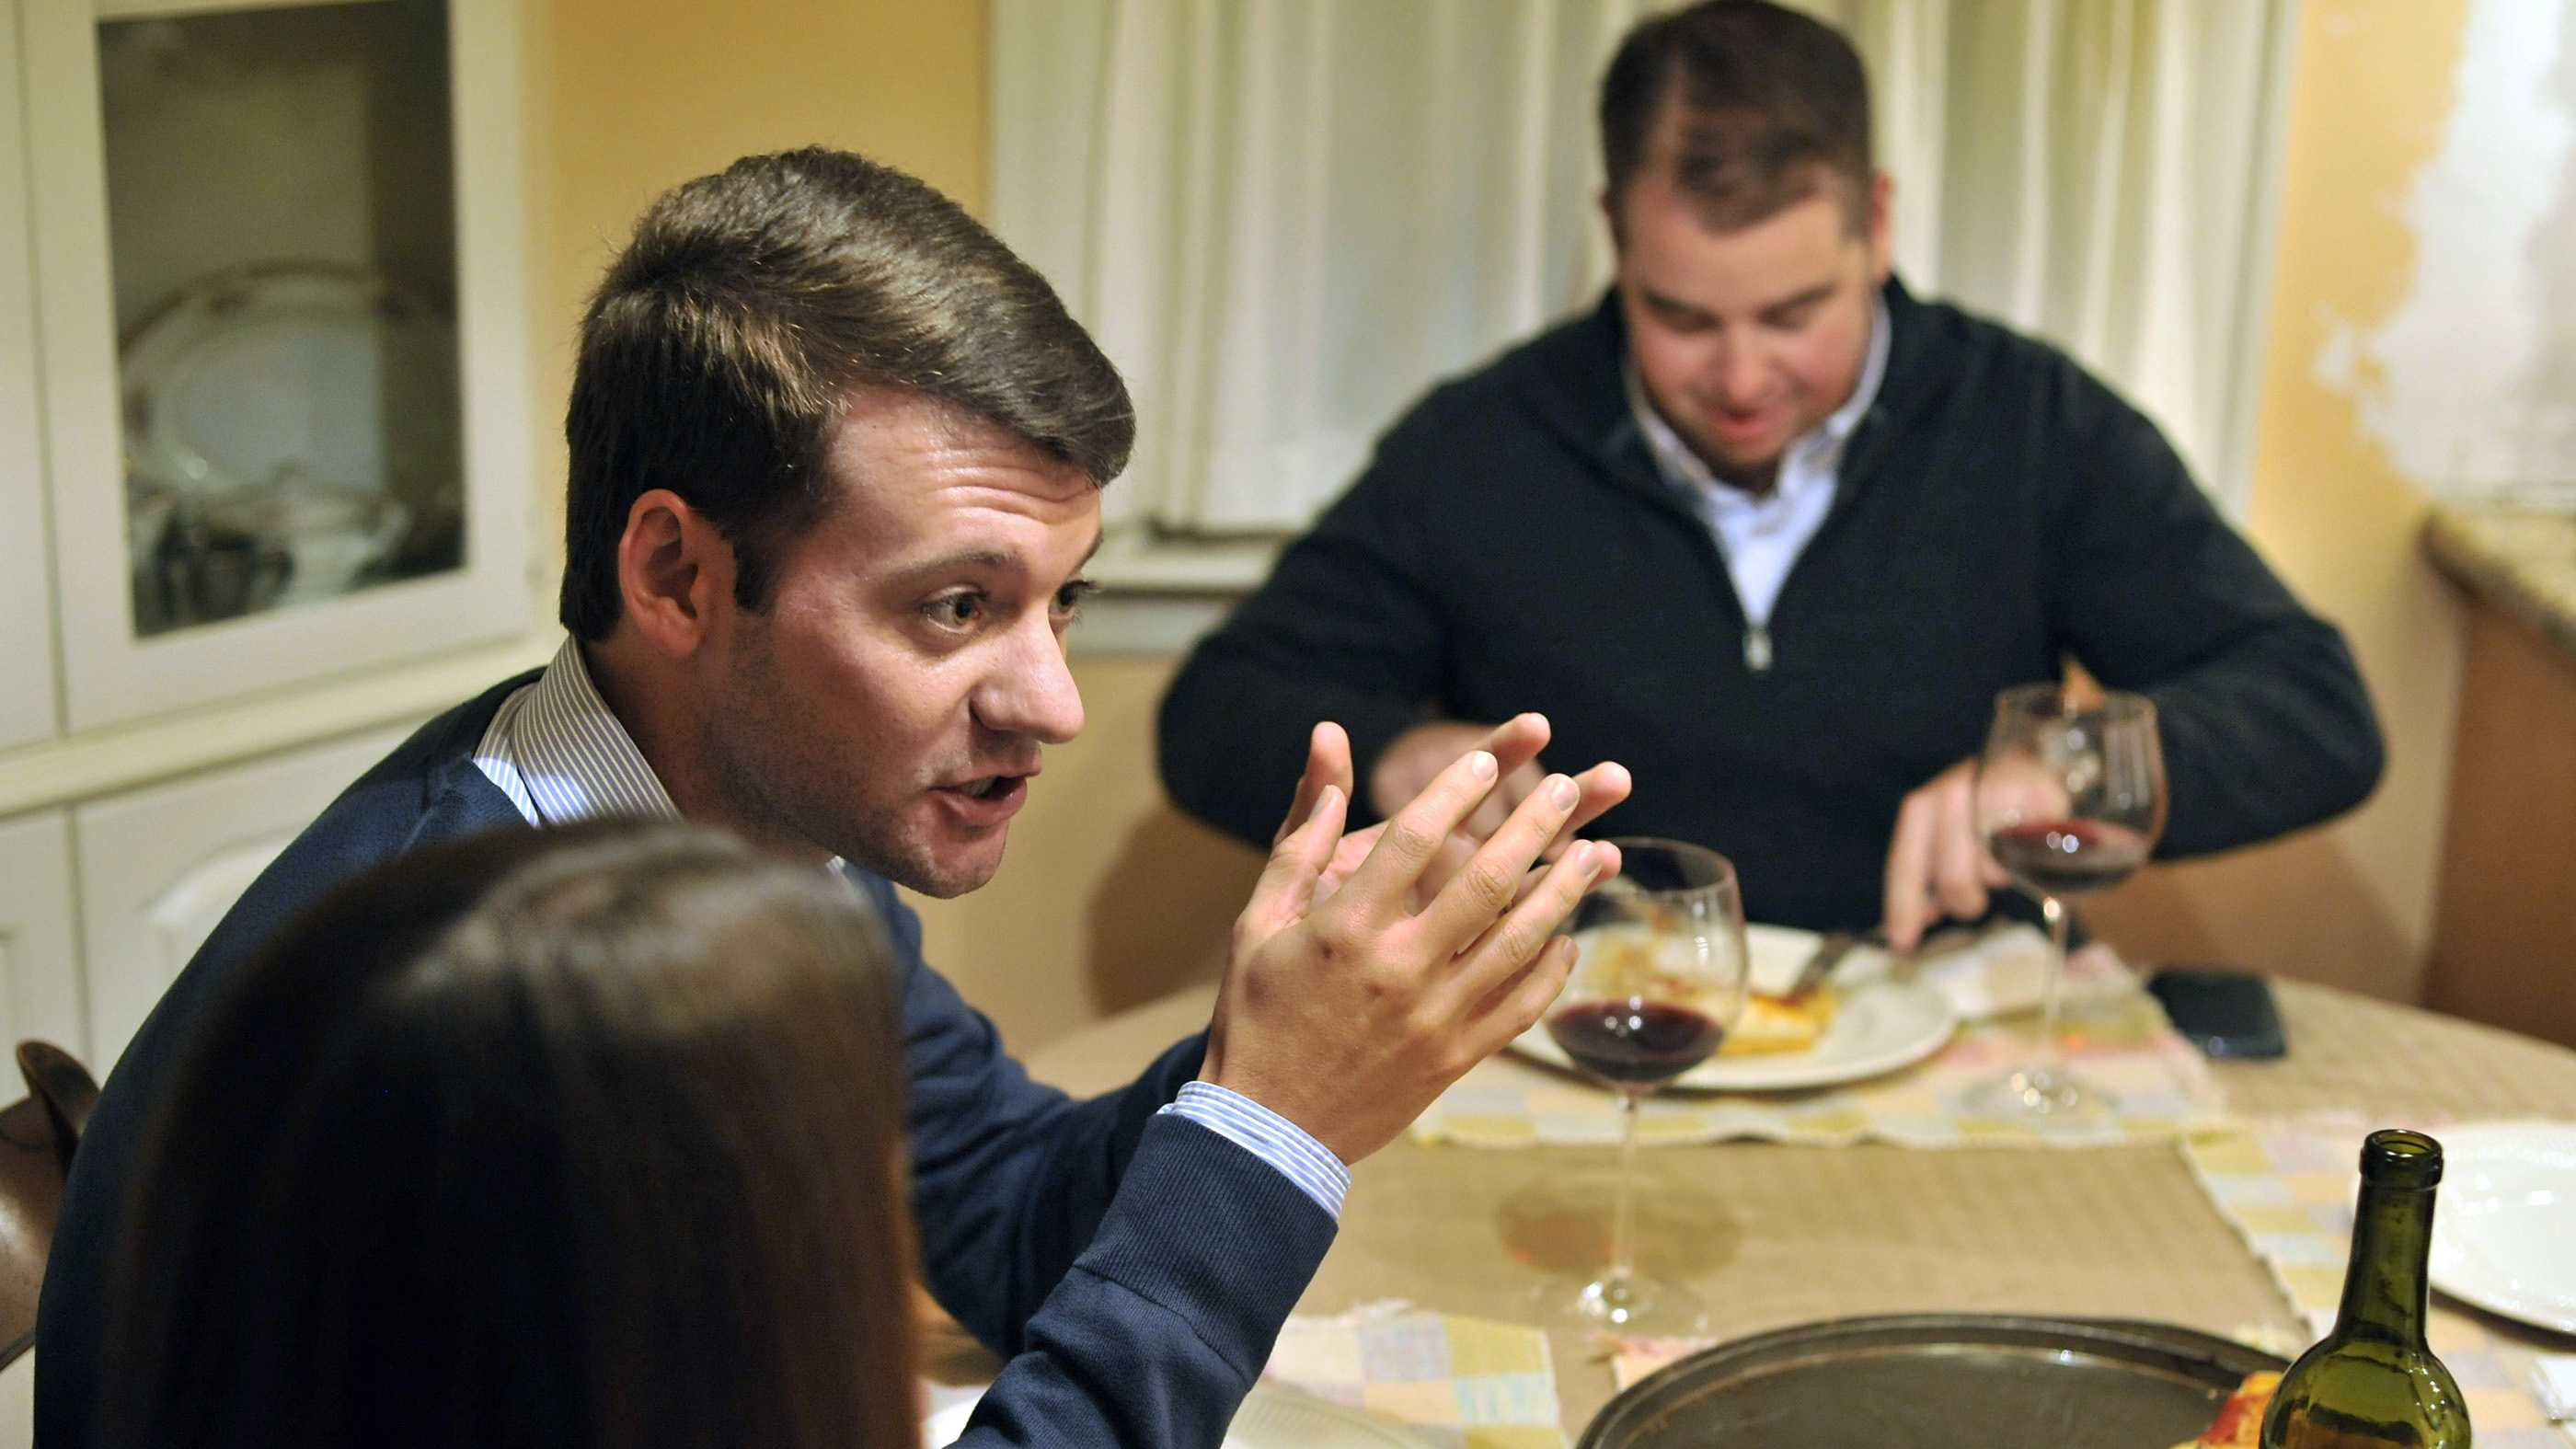 Brian Malone, of Duxbury Mass., speaks about the recent presidential election, while gathered with his extended family including his wife Rebecca Malone, left, and brother-in-law Andrew Marshall, right, of Quincy Mass., during dinner at his in-law's house in Hingham, Mass., where politics is a frequent, and divisive topic of conversation.